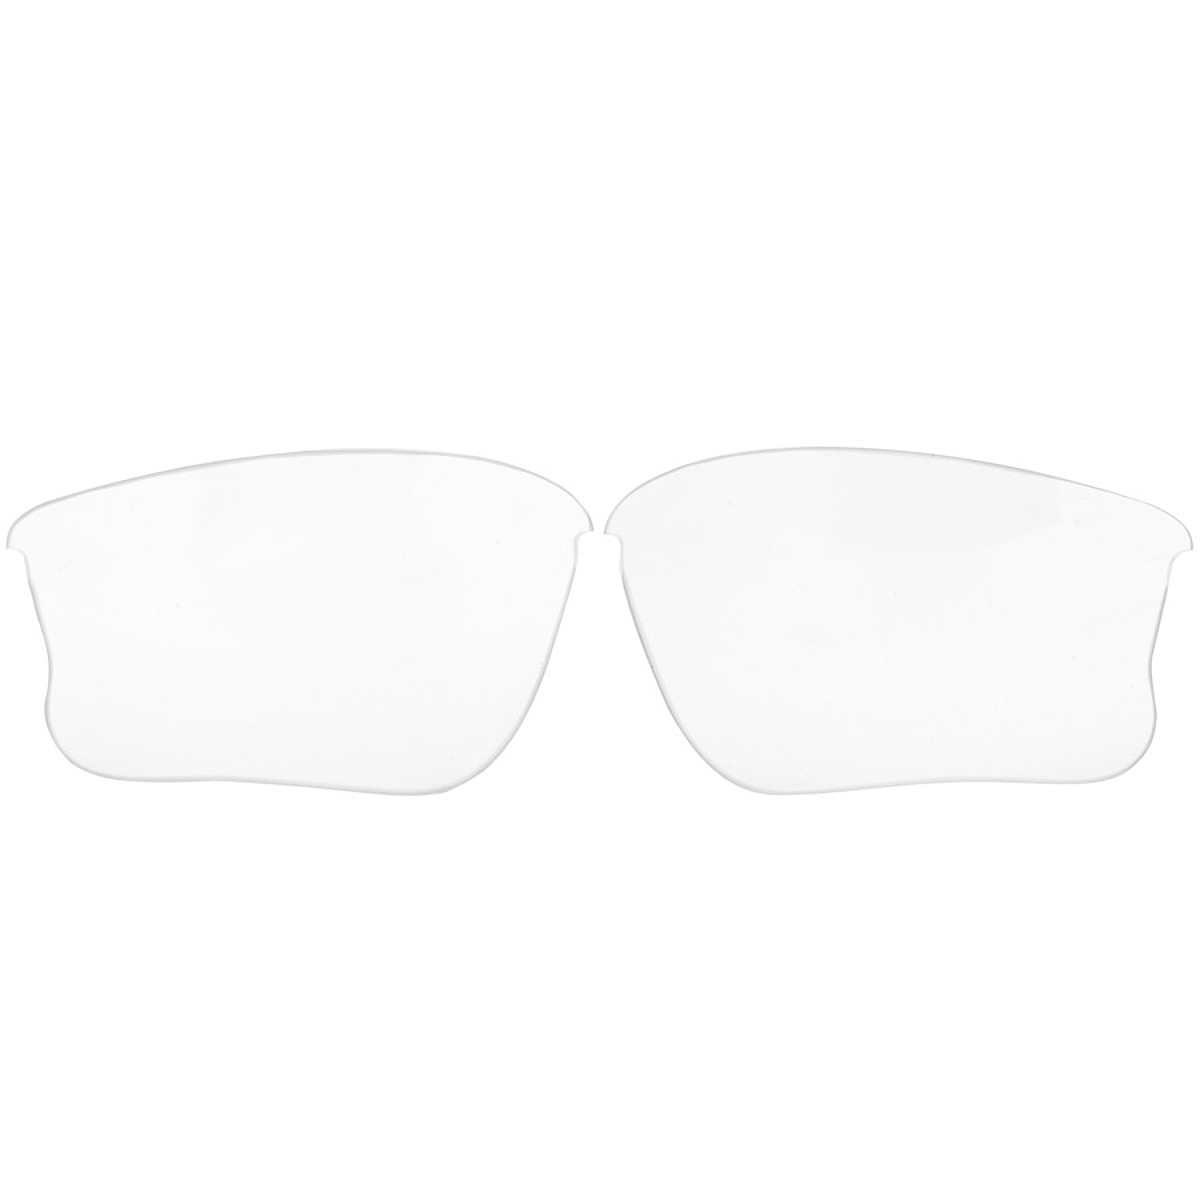 photo: Oakley Flak Jacket XLJ Accessory Lenses sunglass lens